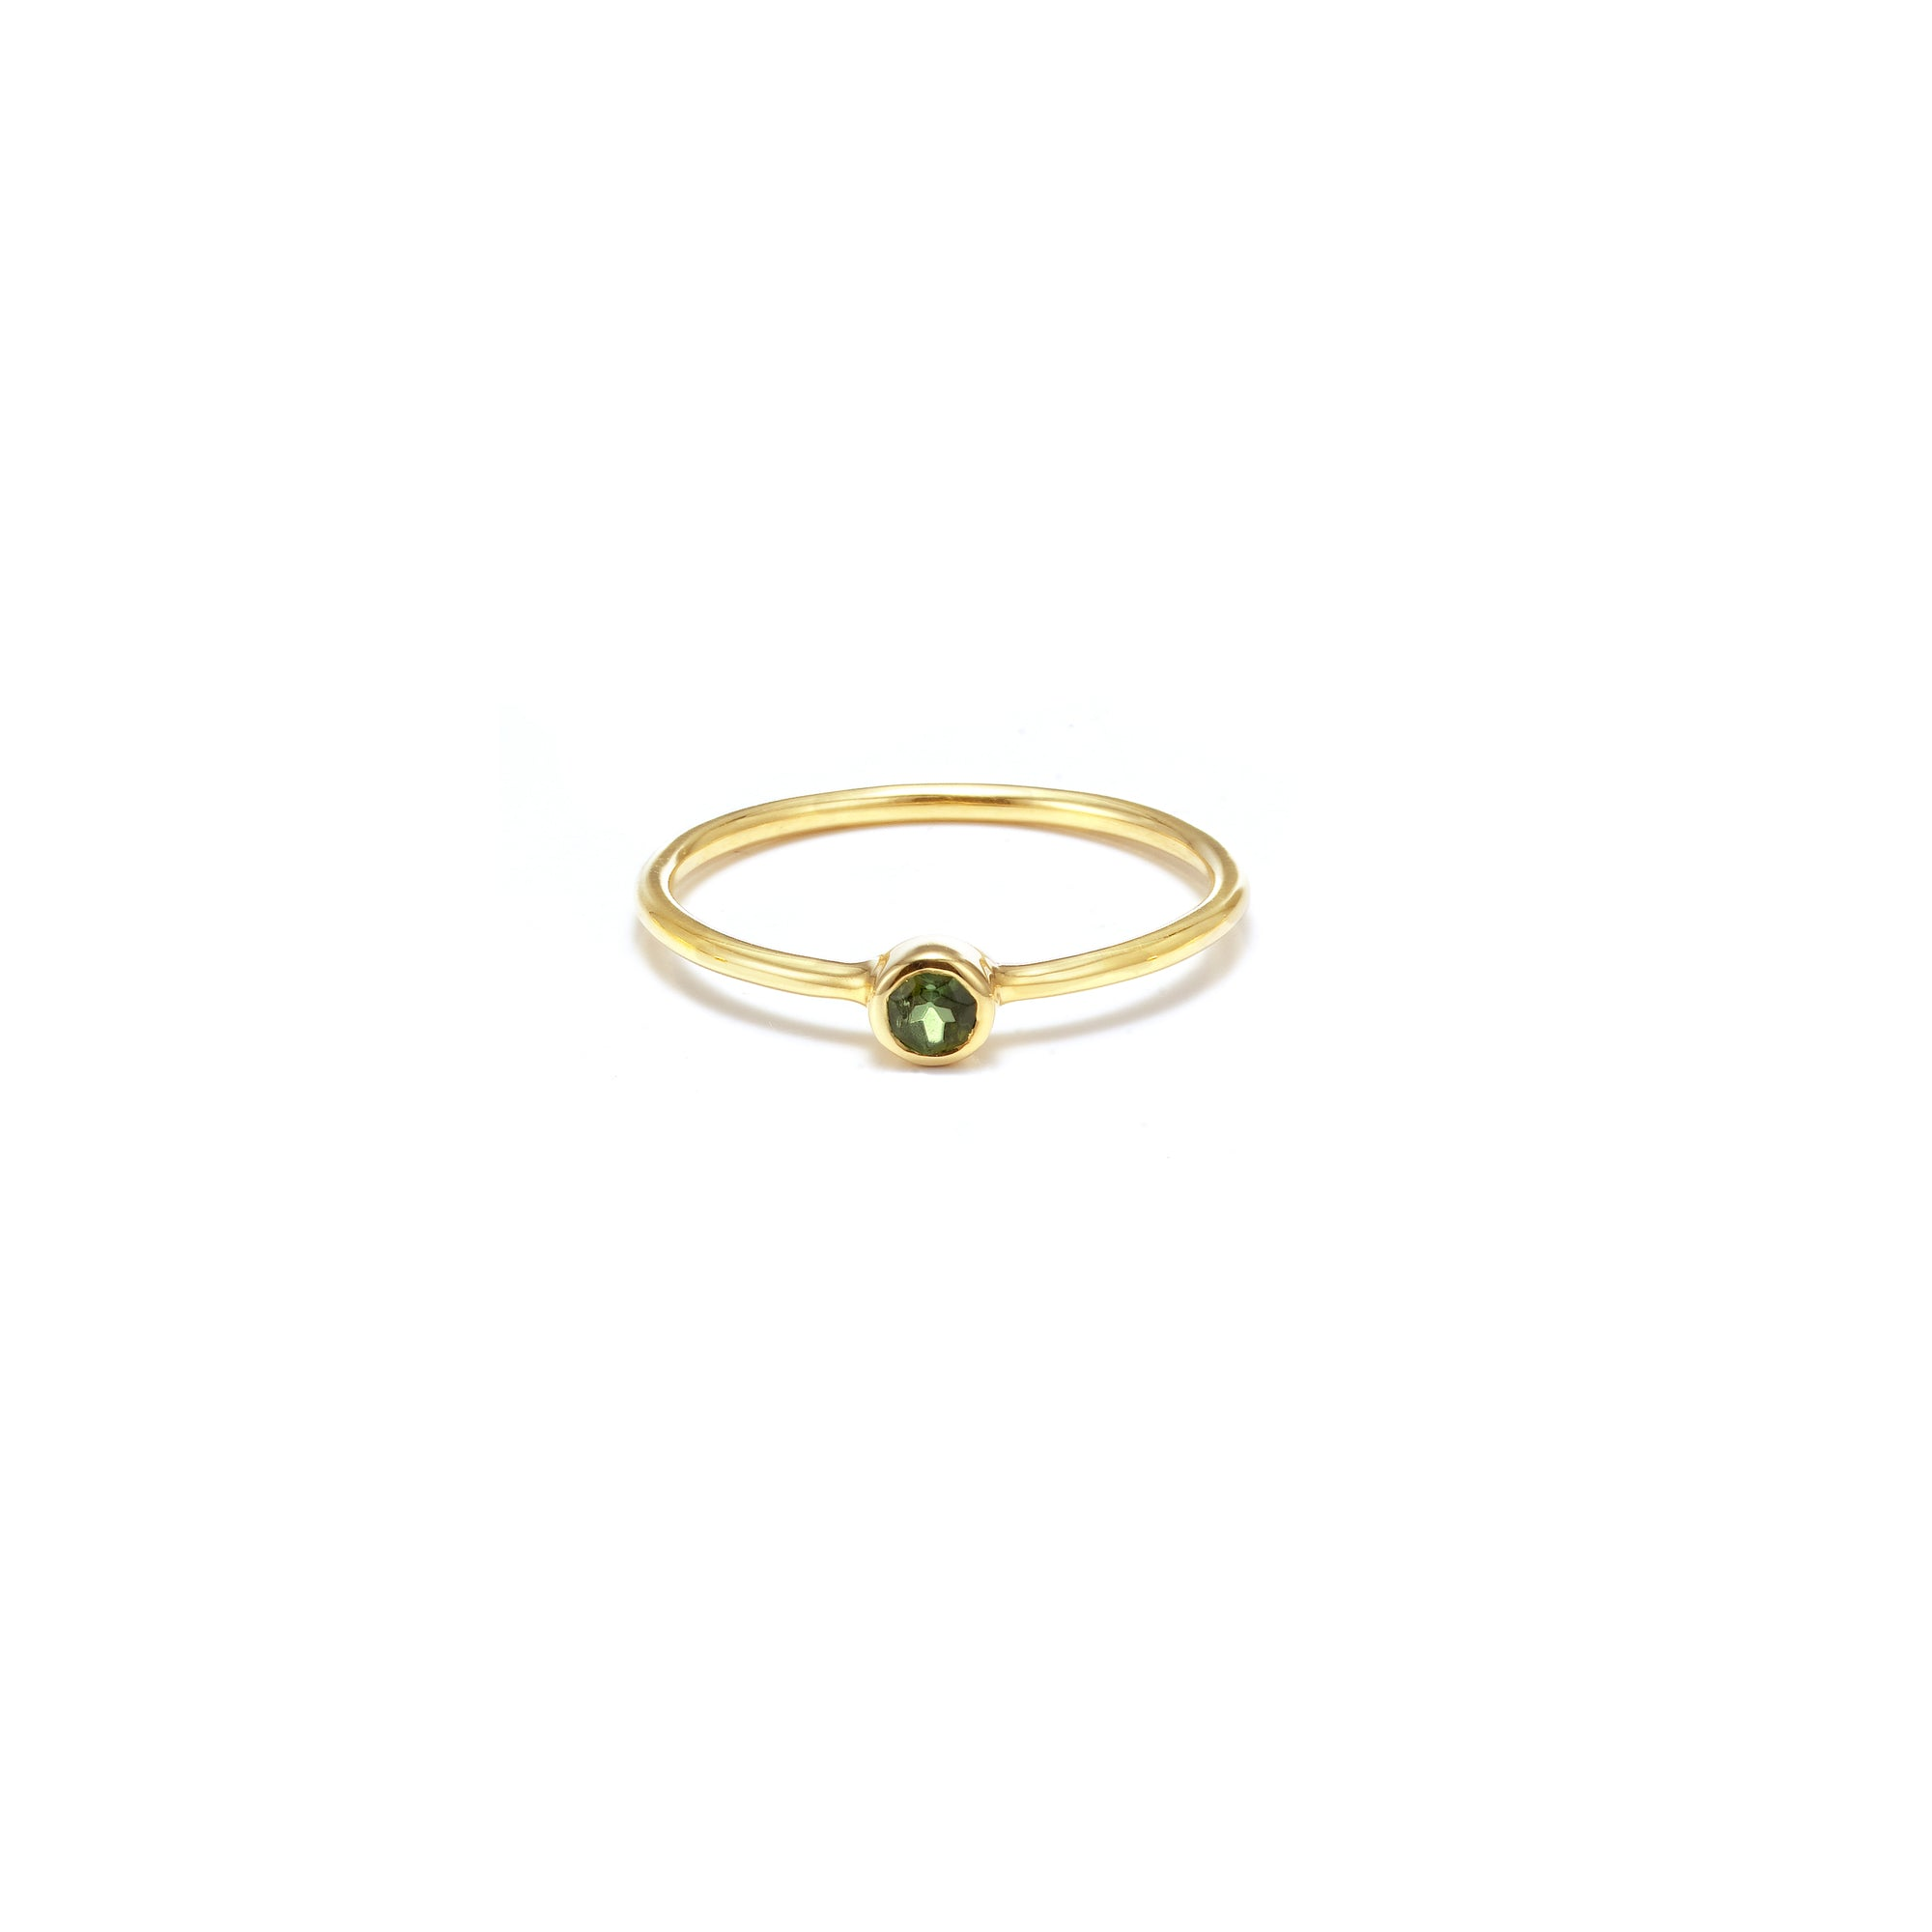 AXIS / Ring / Pistil / Gold + Green Tourmaline